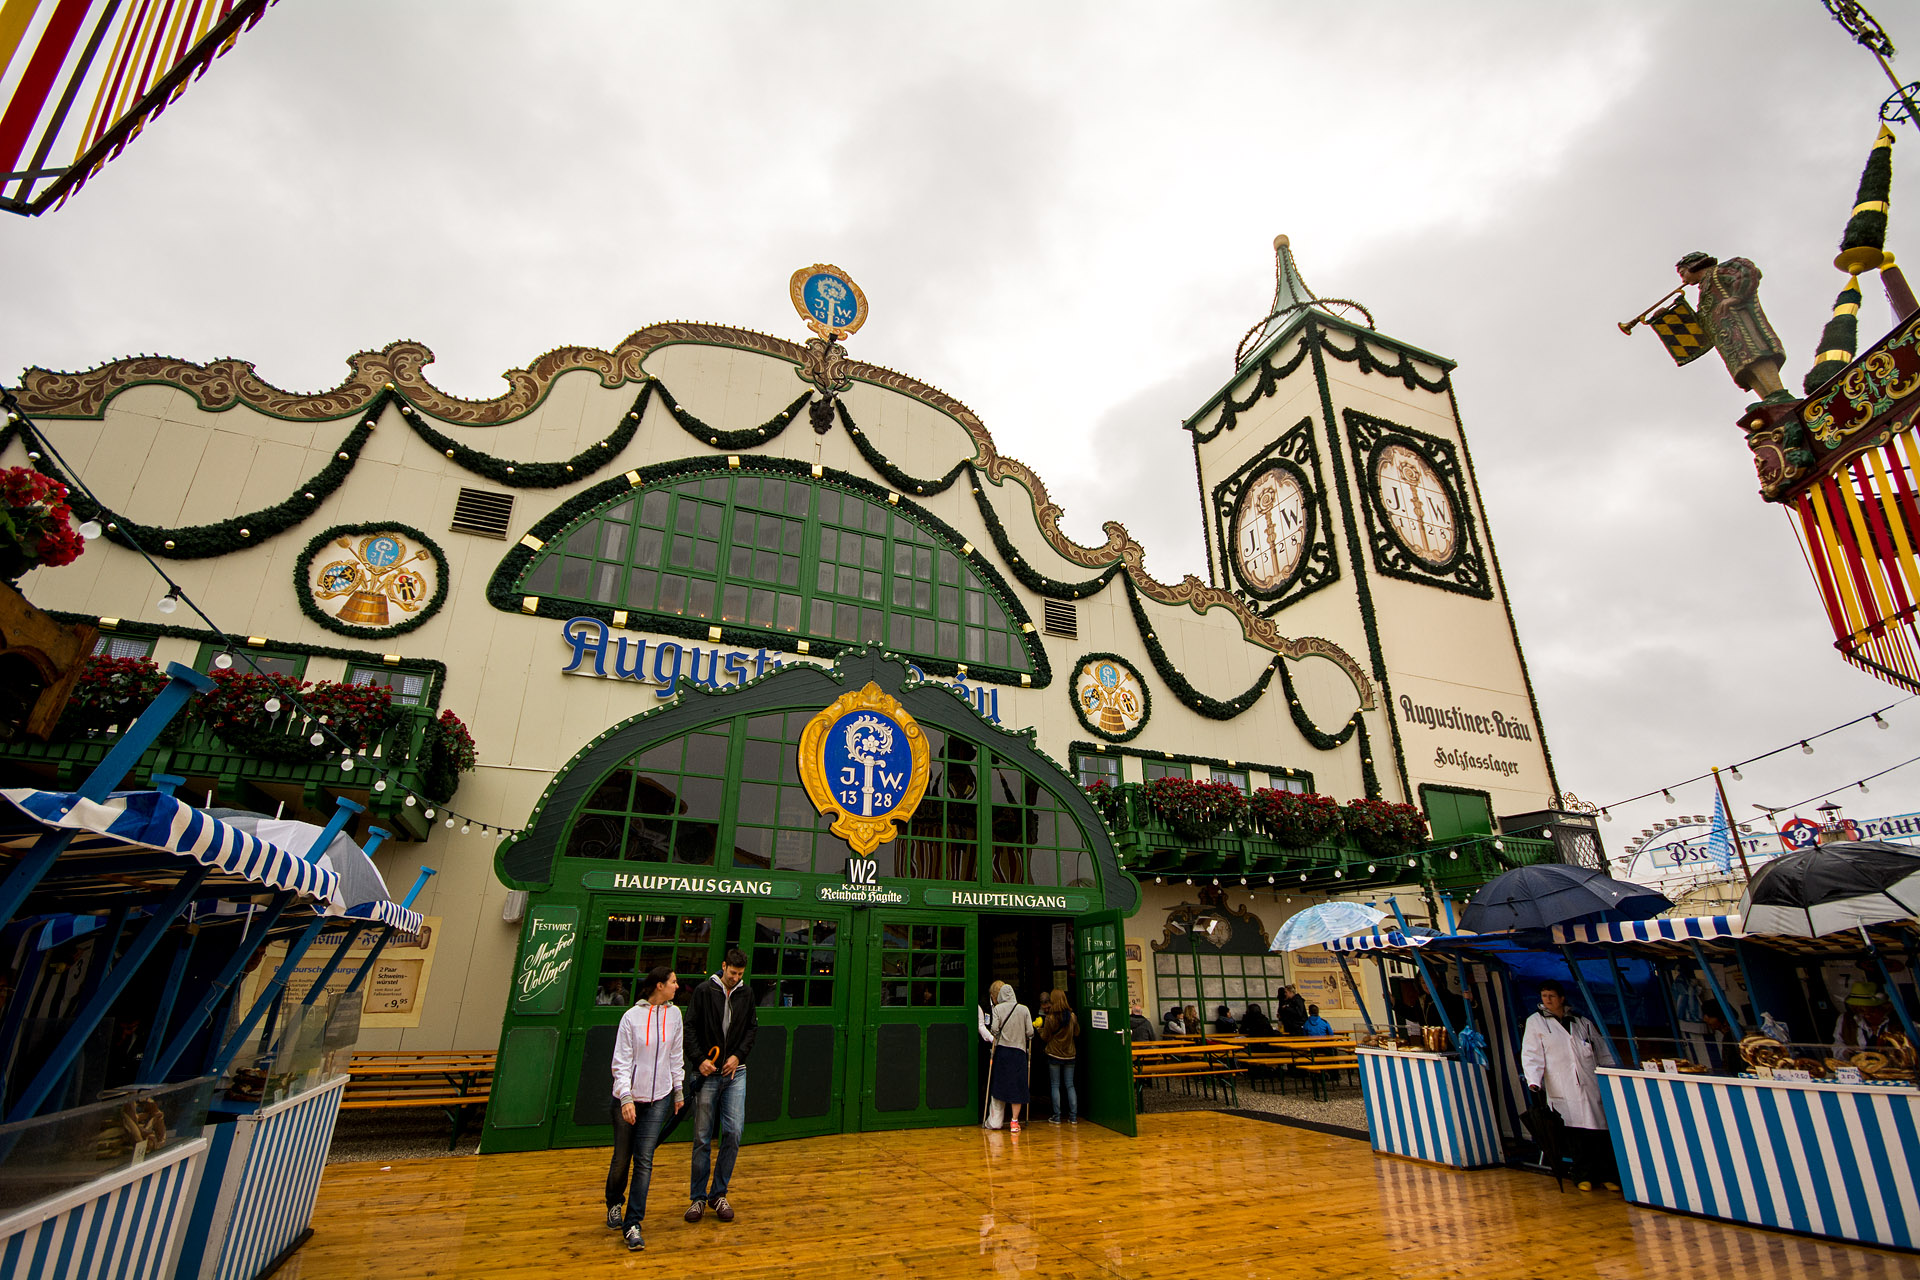 Augustiner tent